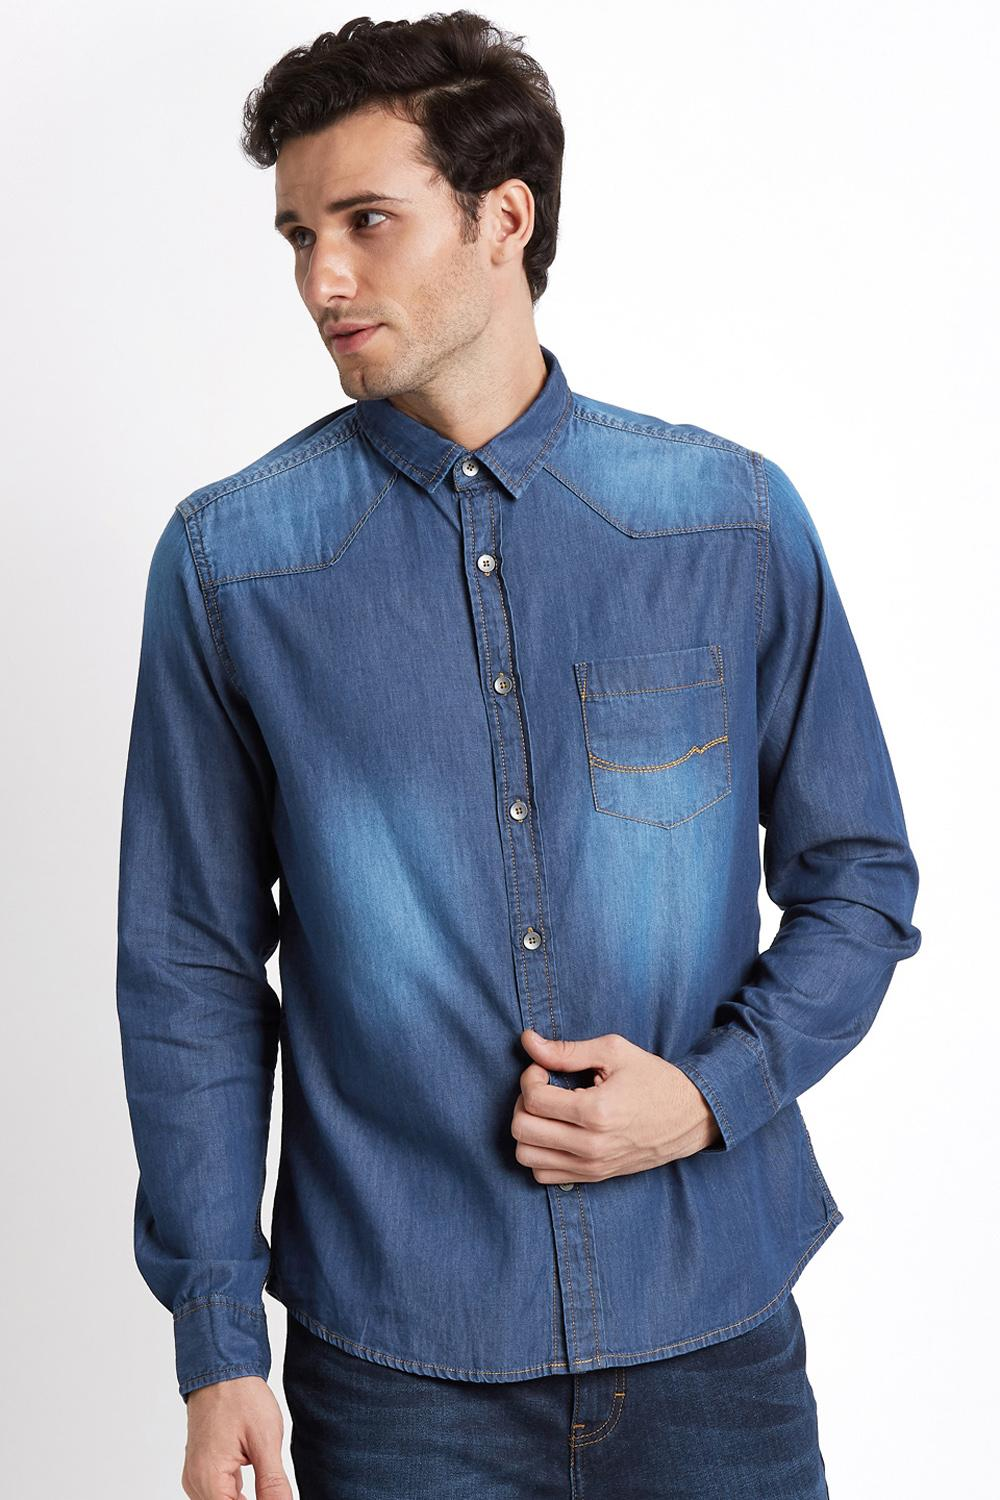 78a6b0a1278 Buy Mens Casual and Formal Shirts Online with Affordable Price in ...